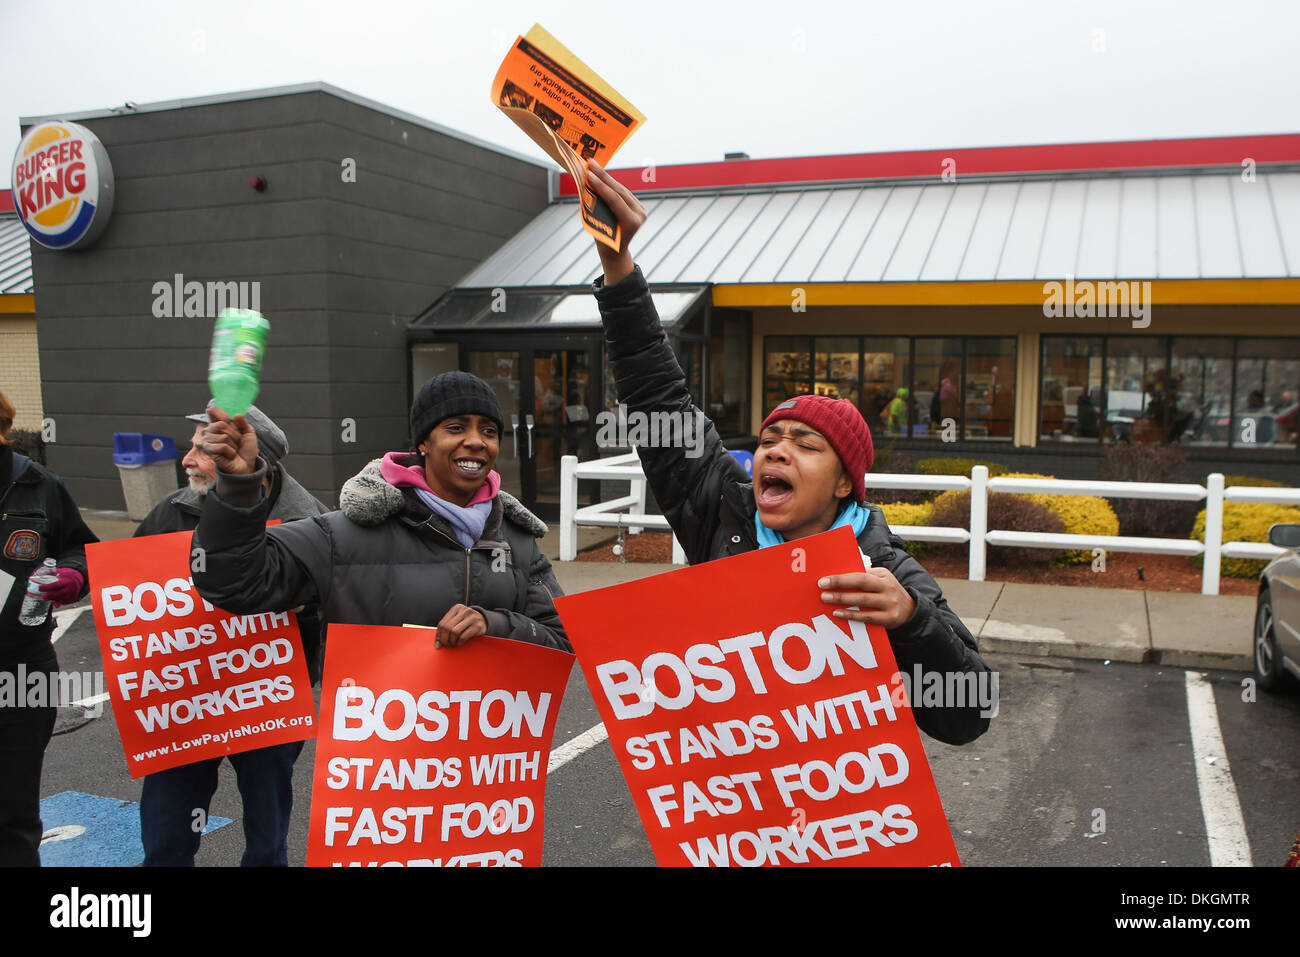 Boston, Massachusetts, USA. 5th Dec, 2013. Dozens rally for higher wages for employees in the fast food industry outside a Burger King in the Dorchester neighborhood of Boston, Massachusetts as similar rallies were held rally across the country for higher fast food employee wages. Credit:  Nicolaus Czarnecki/METRO US/ZUMAPRESS.com/Alamy Live News - Stock Image